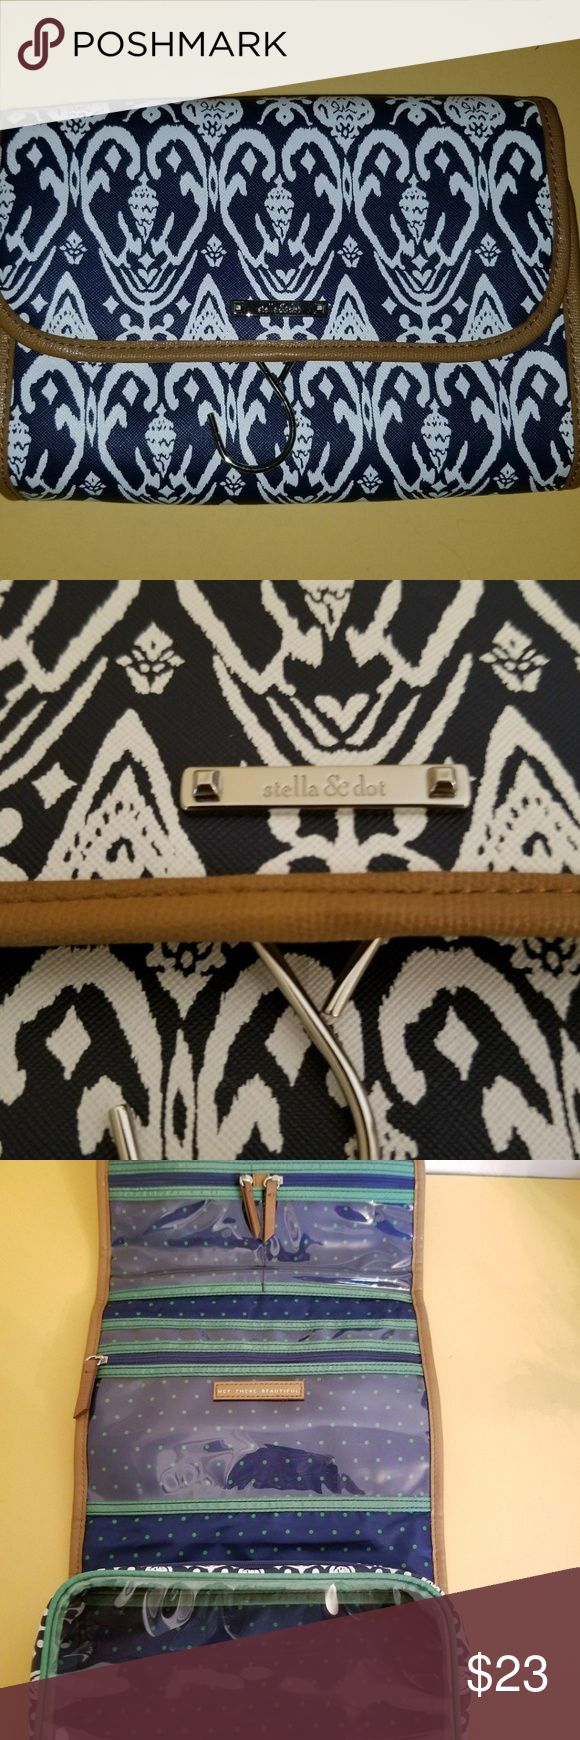 Stella and Dot Travel Make up Hanging Organizer Brand: Stella and Dot     Color: Blue and White     Condition: EUC     Length 9.5     Height 7 inches  All Measurements are with a measuring tape and are close approximations. Please review all photos  Please contact with questions Stella & Dot Bags Travel Bags